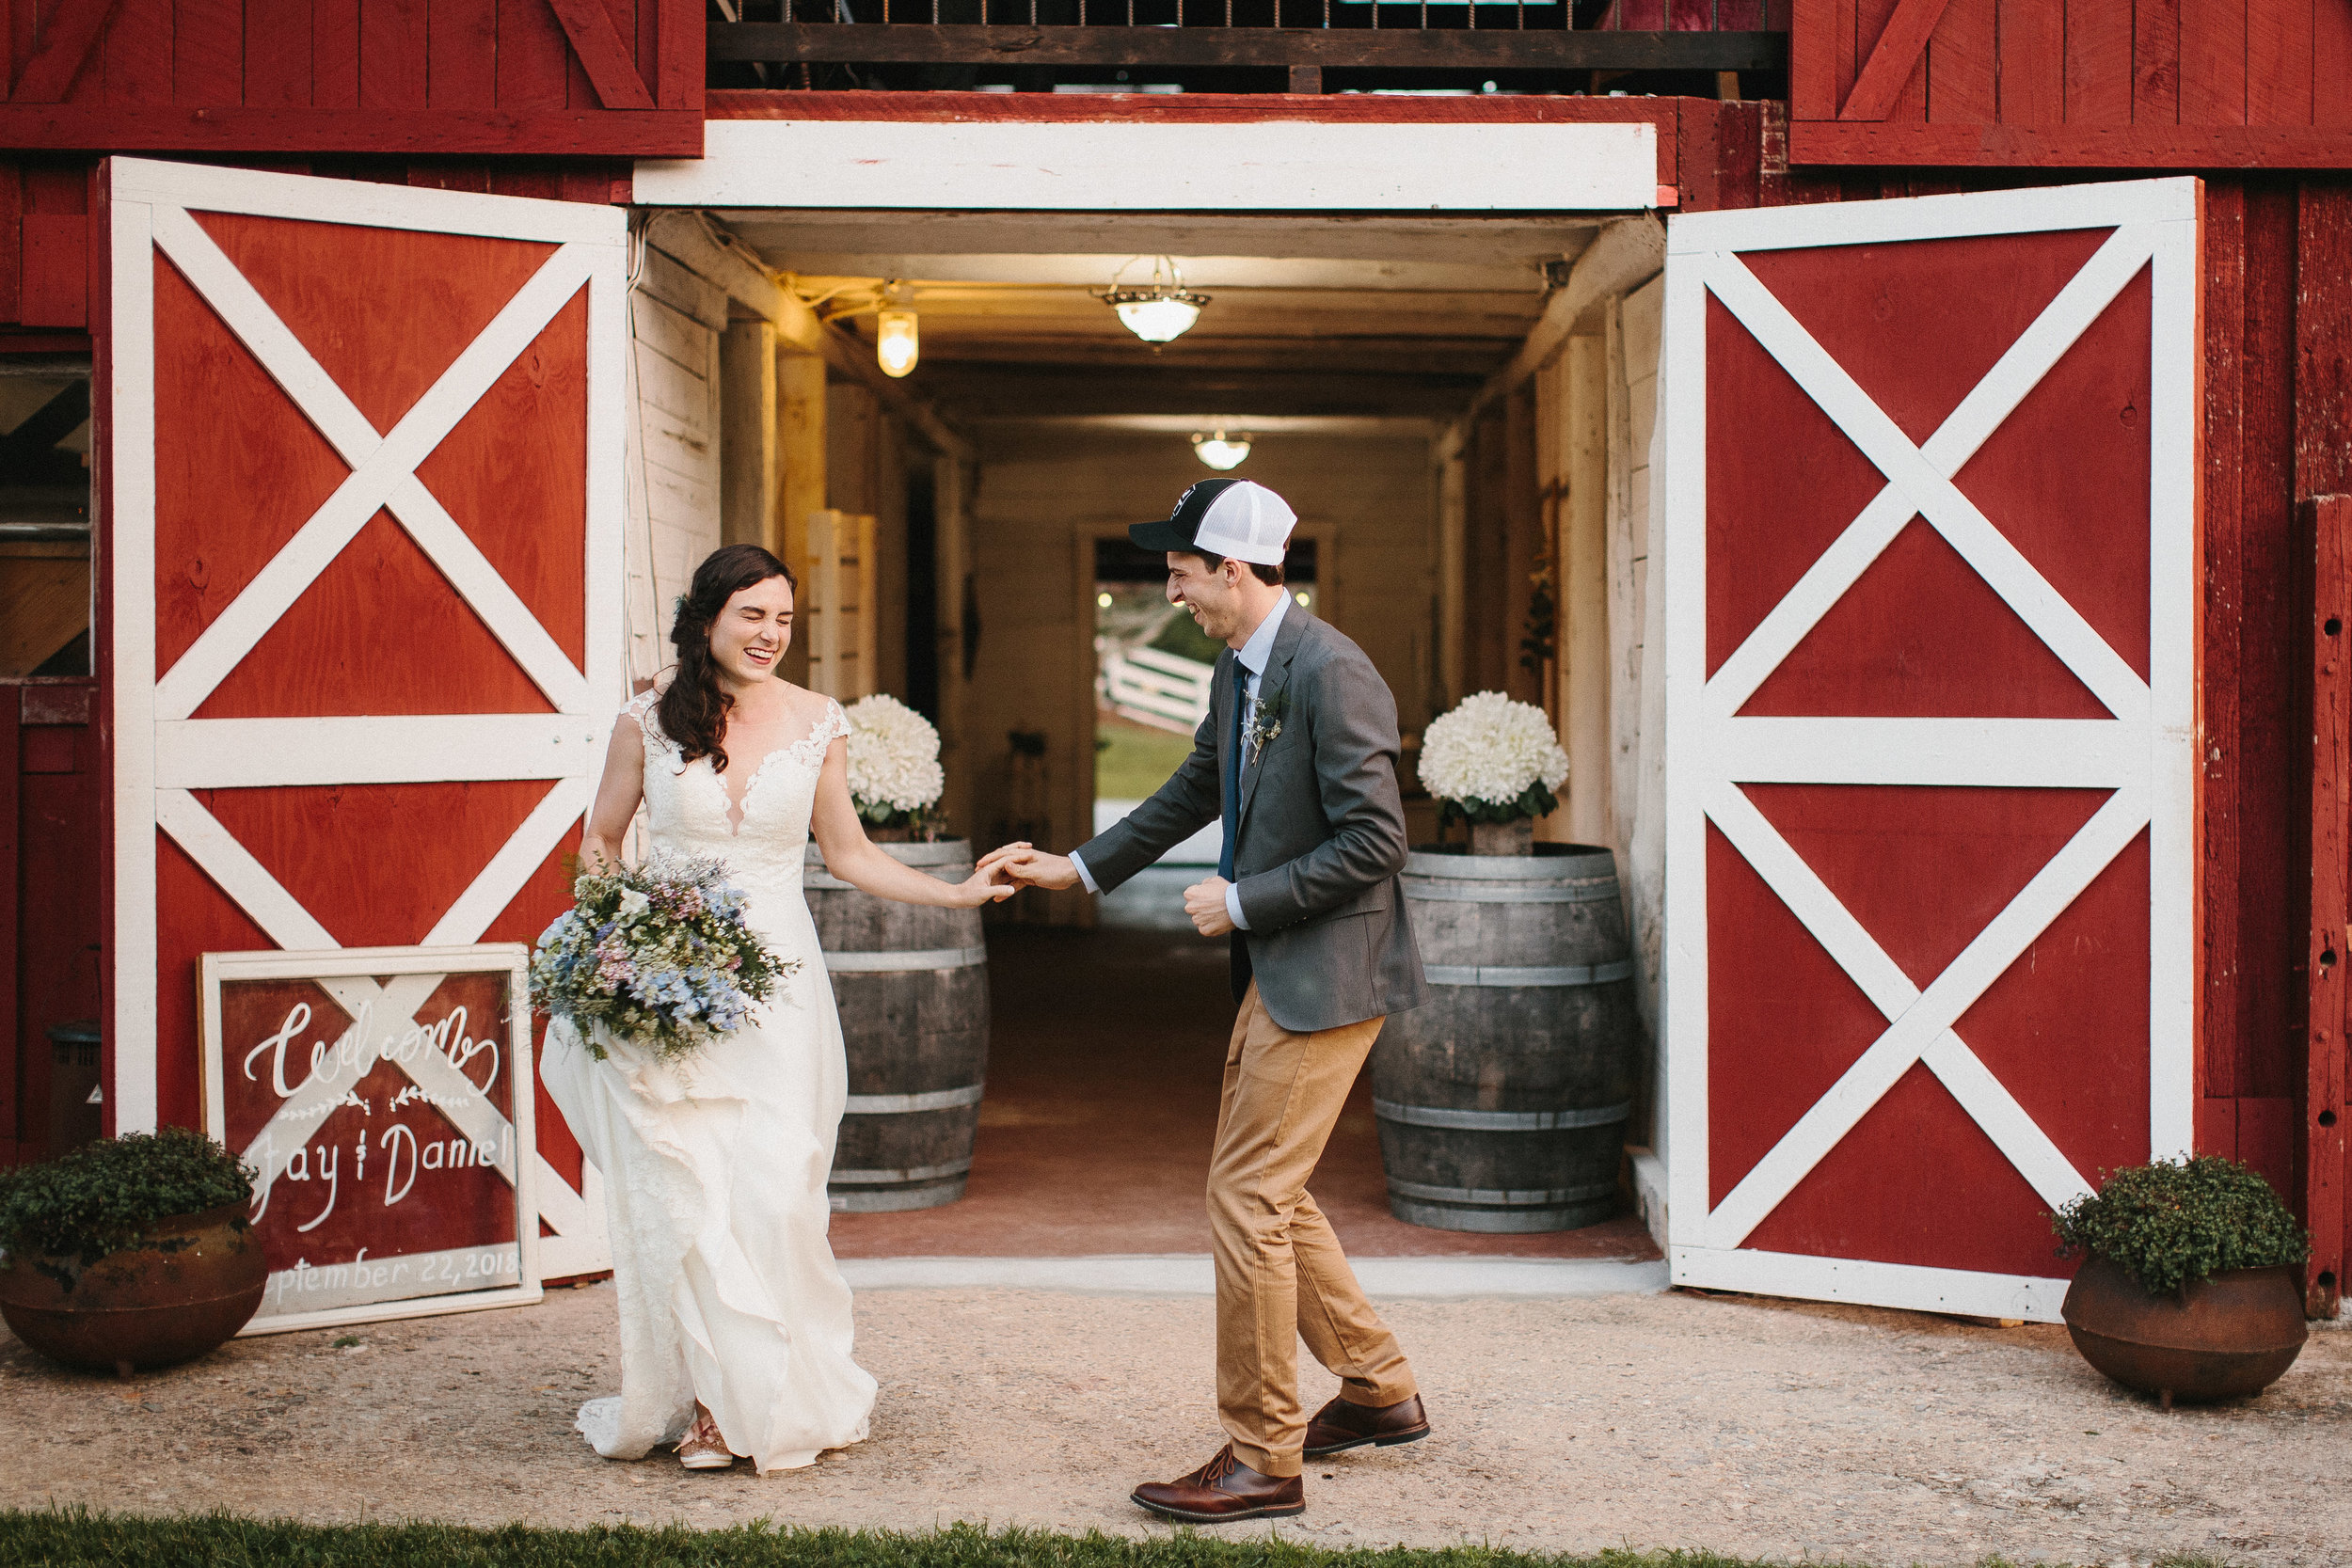 cleveland_georgia_mountain_laurel_farm_natural_classic_timeless_documentary_candid_wedding_emotional_photojournalism_river_west_1888.jpg